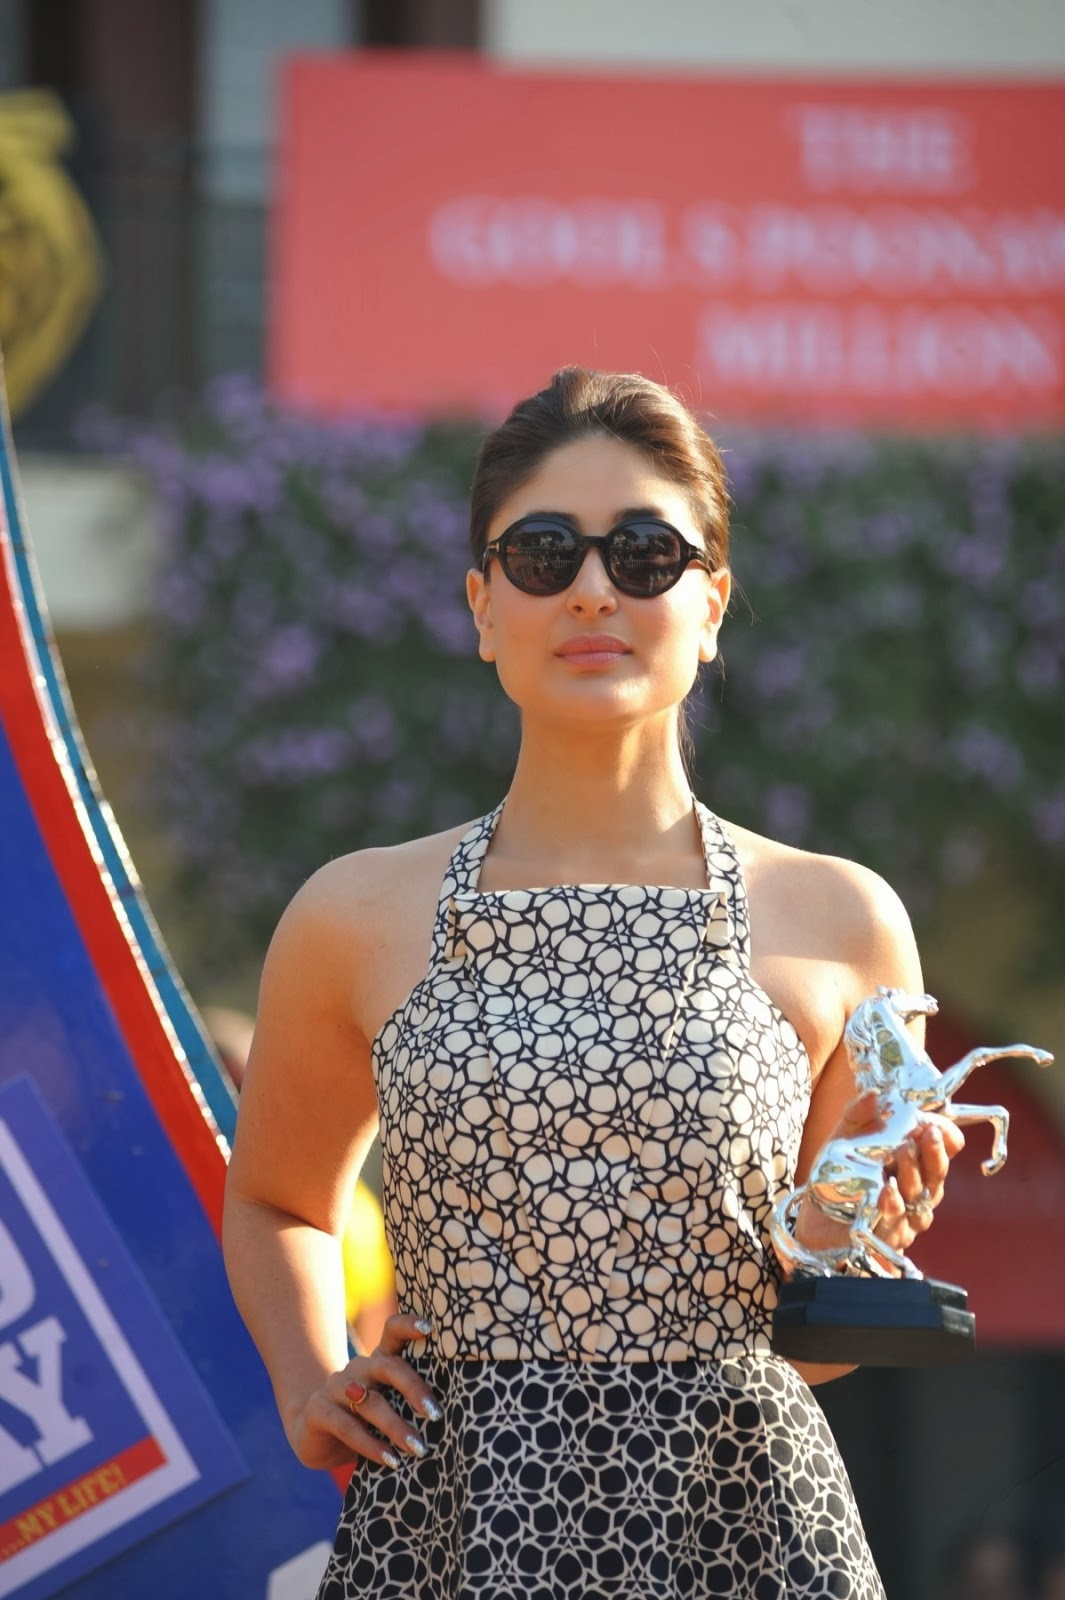 http://4.bp.blogspot.com/-pTD7S9x0--g/Ut0-hse3pgI/AAAAAAABofI/K1sLwrb3m3U/s1600/Kareena+Kapoor+and+Tushar+attends+the+Mid-Day+races++(10).JPG